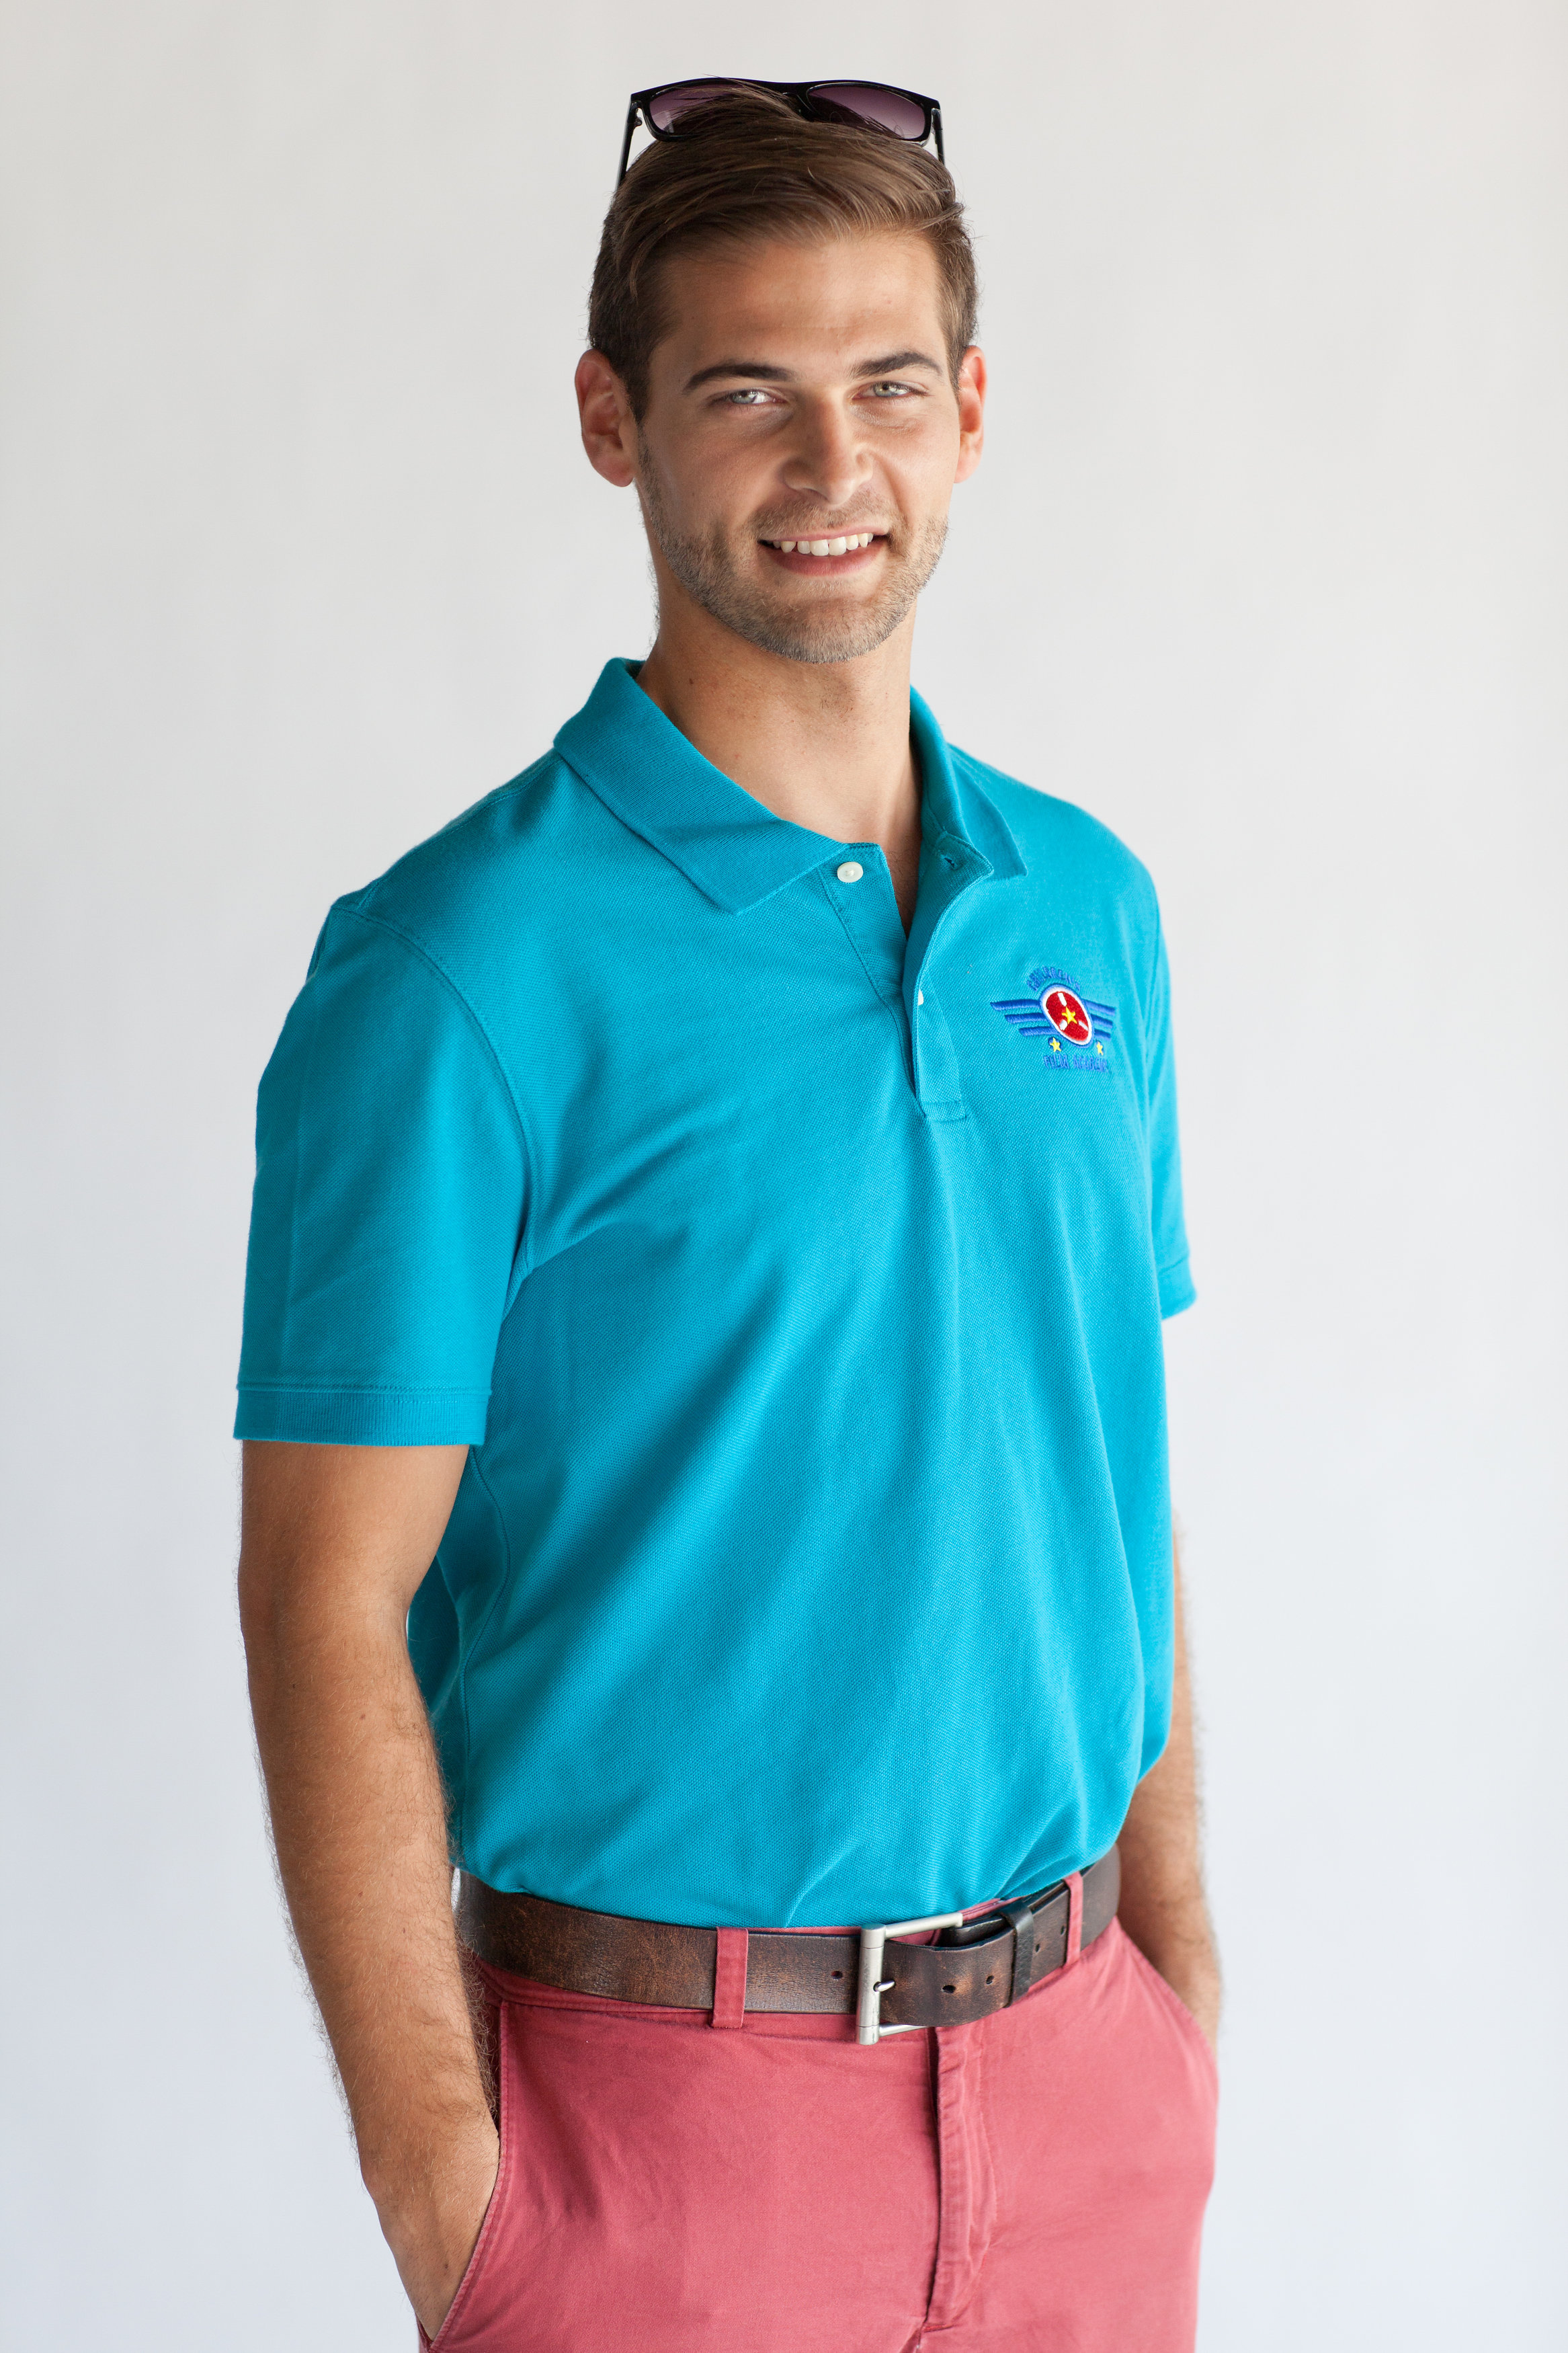 Men's Teal Academy Polo $18